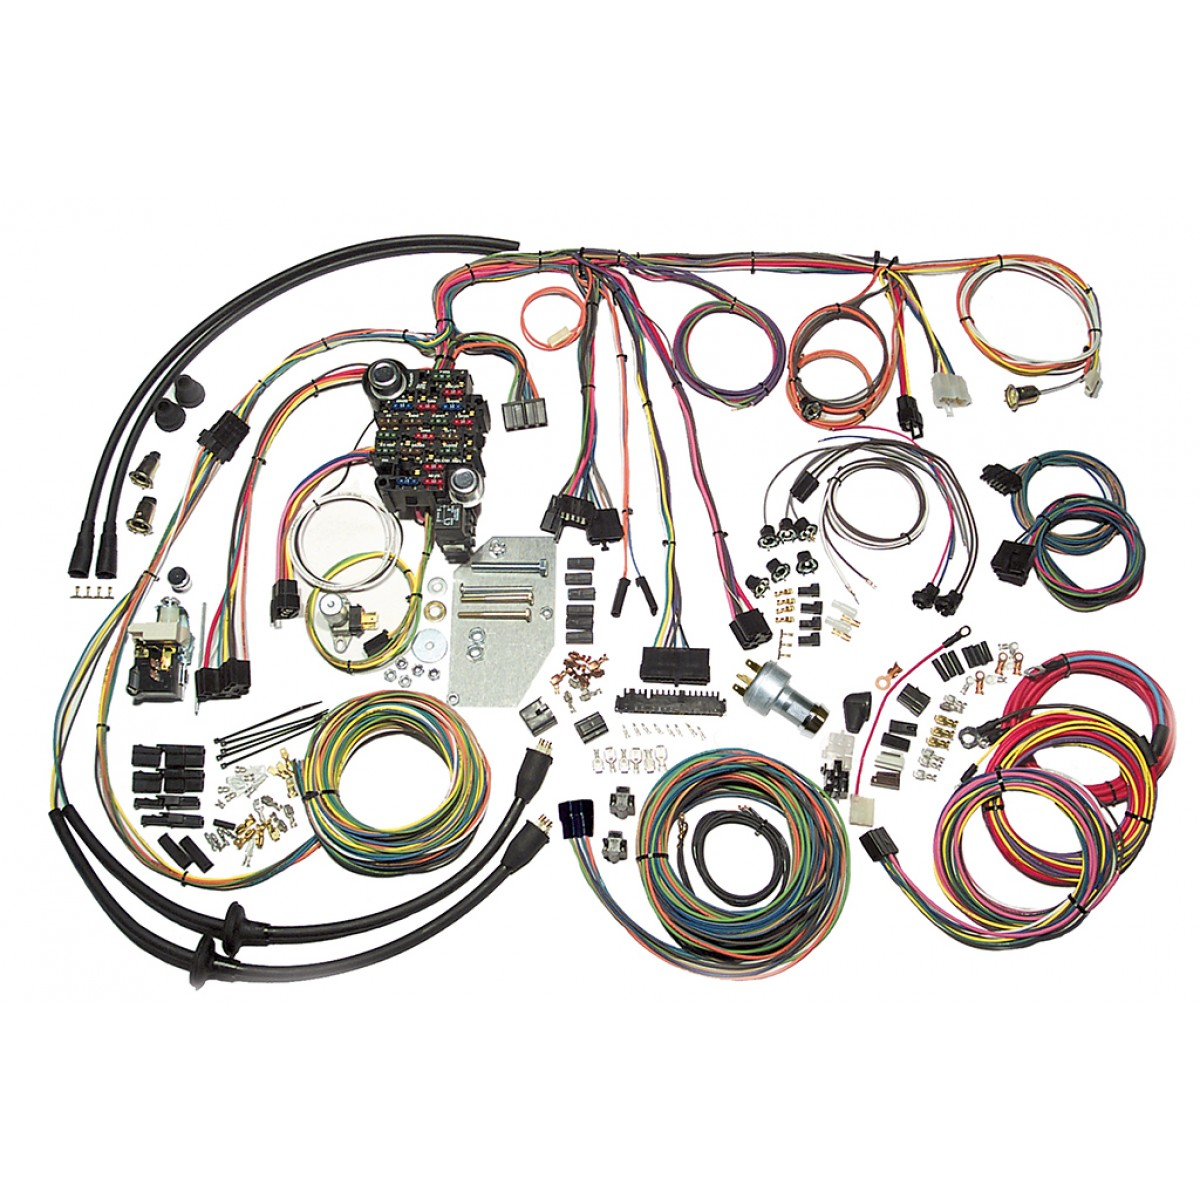 Complete Wiring Harness Kit - 1955-1956 Chevy Tri-Five Belair Part# 500423Code510